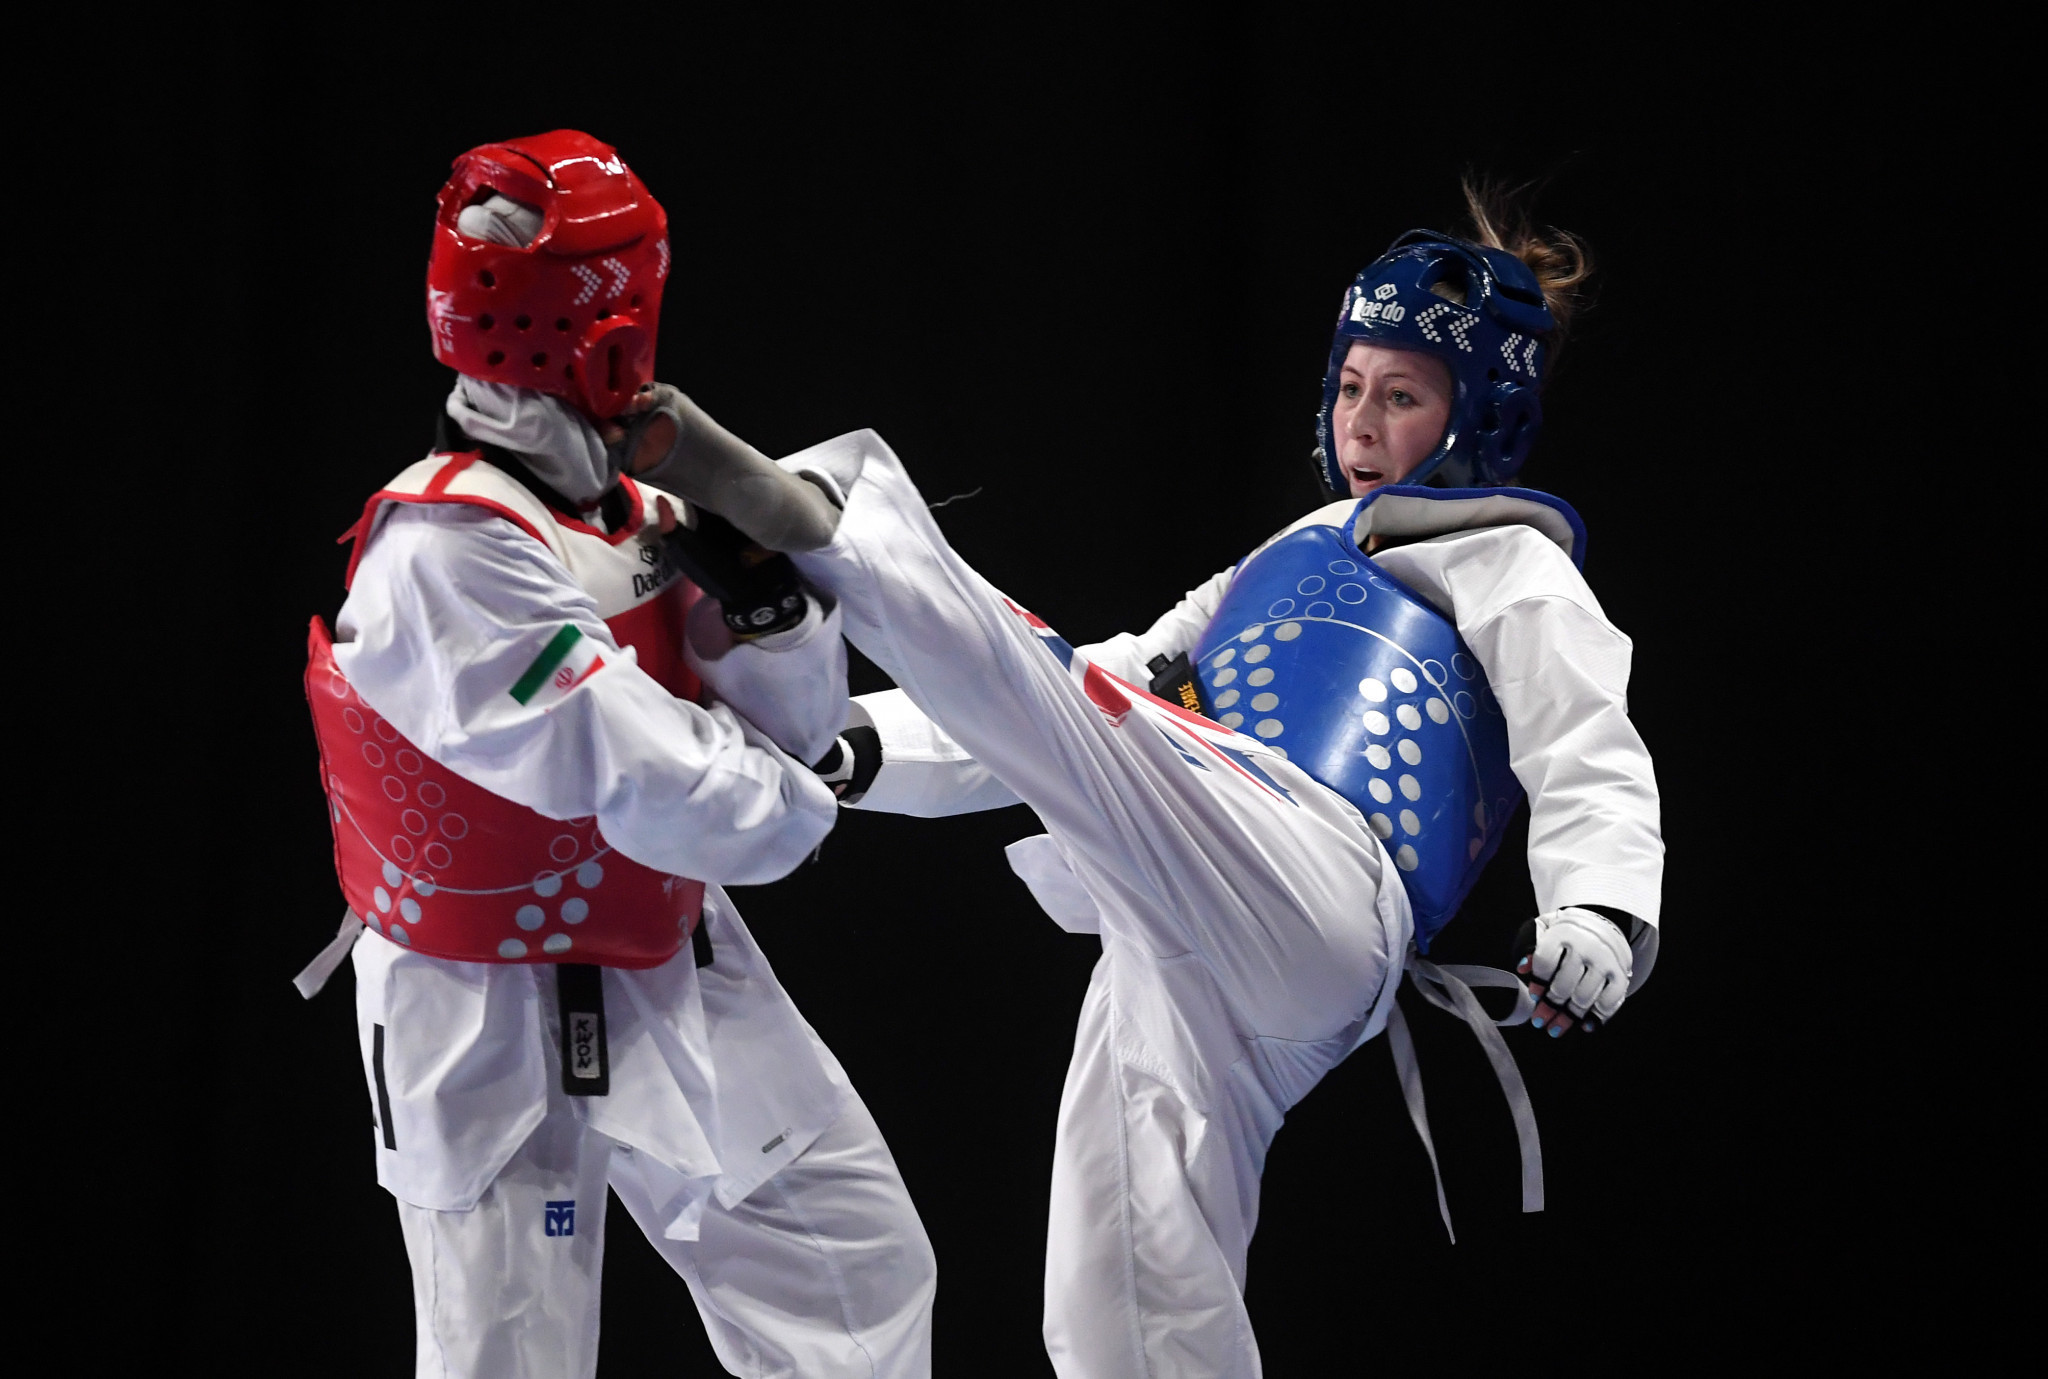 Olympic champions Jones and Isayev among line-up at European Taekwondo Championships